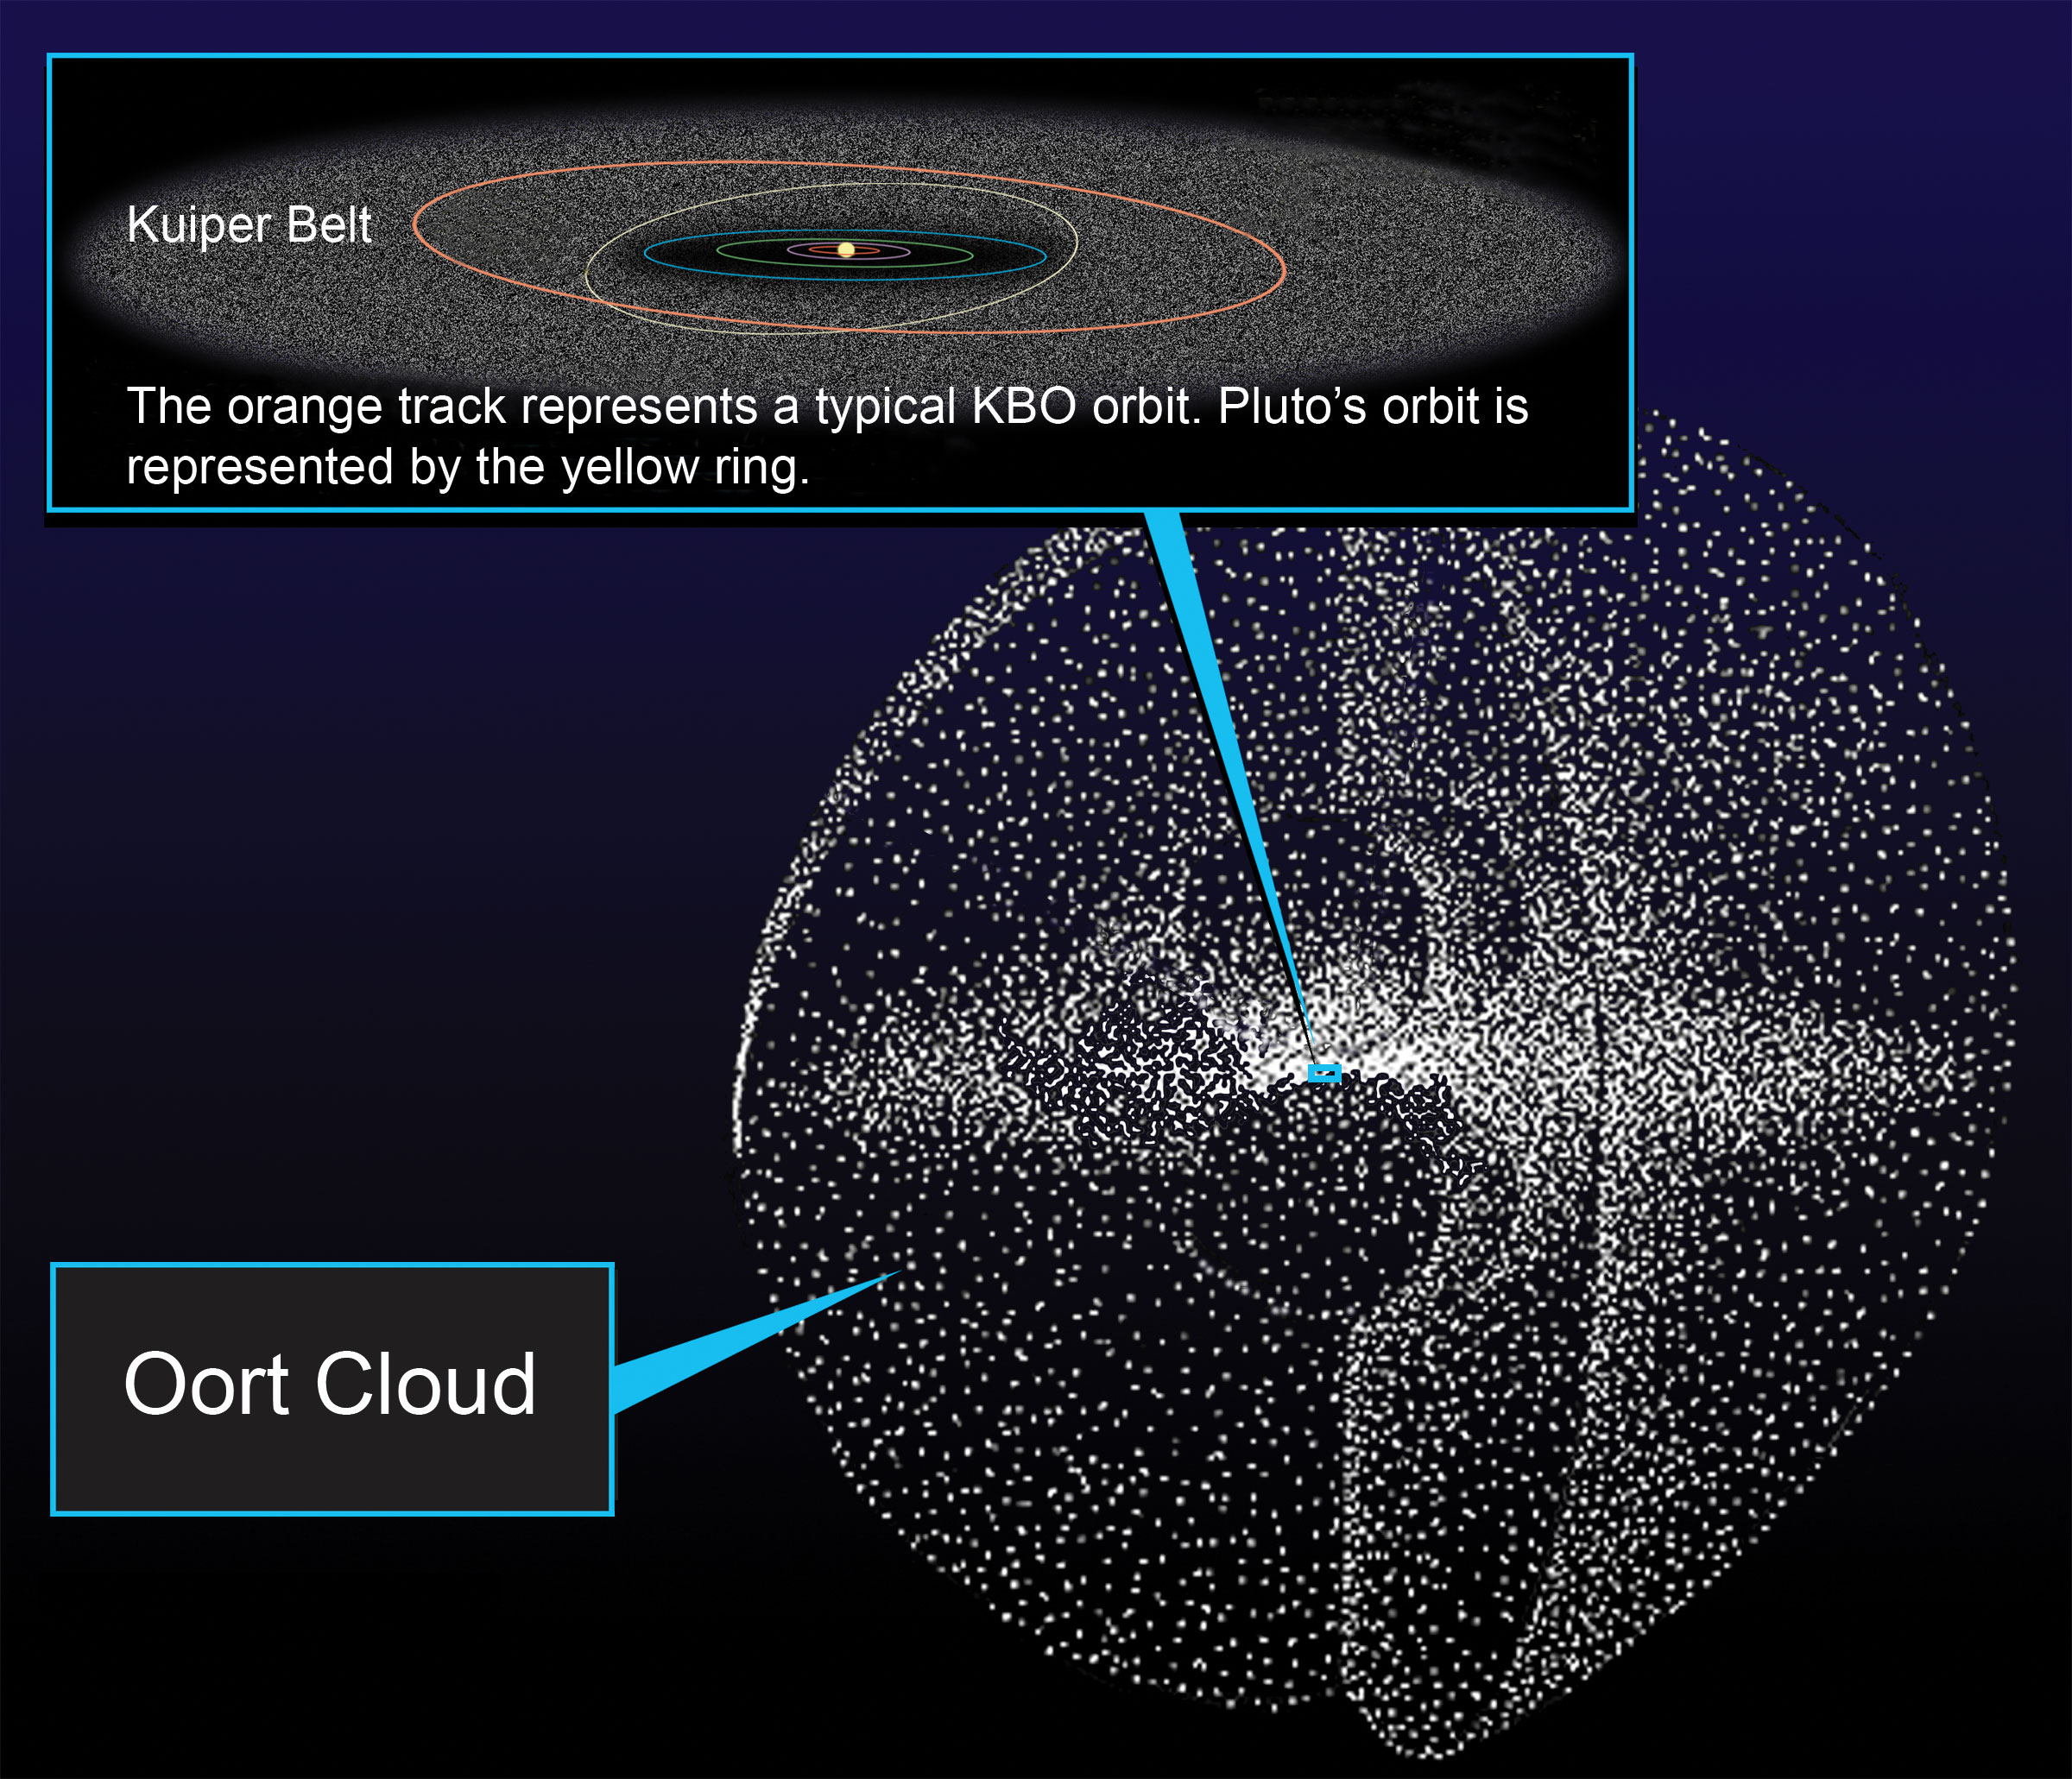 The Oort Cloud expands from a narrow belt on its inner edge into a large sphere farther from the Sun.